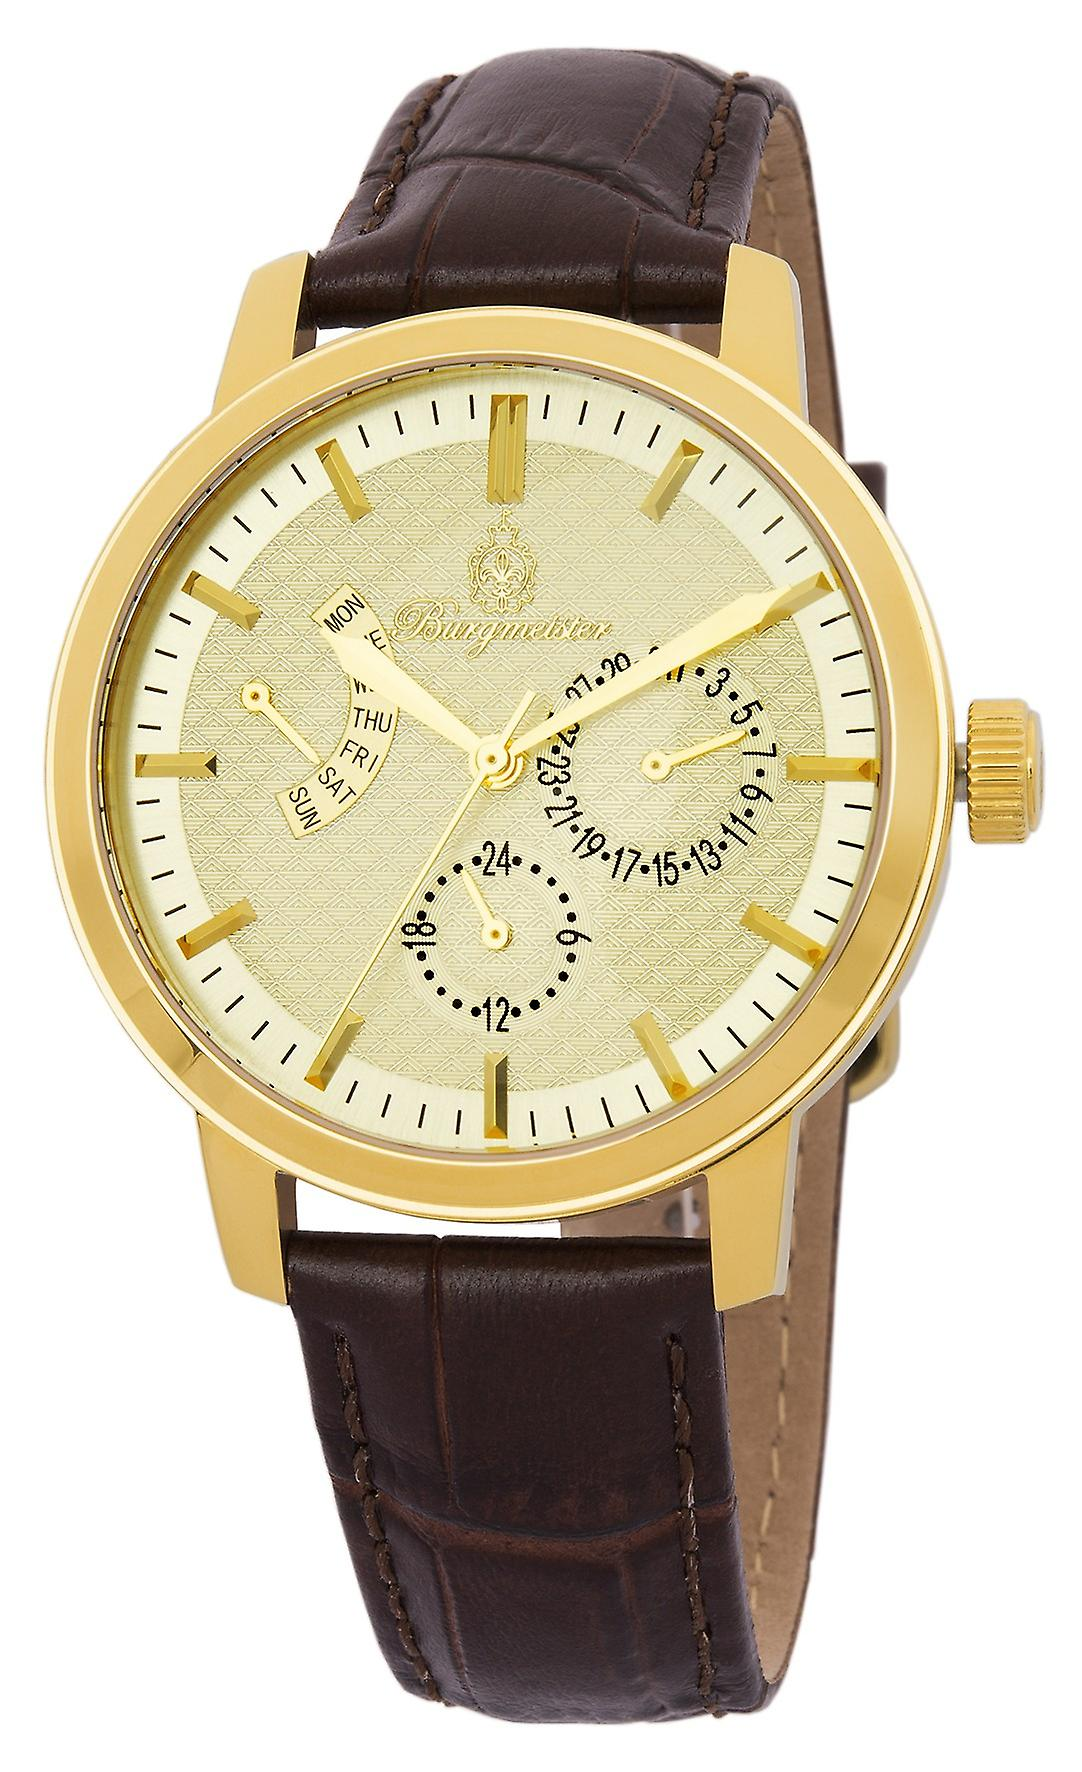 Burgmeister ladies quartz watch Baton Rouge, BM218-295